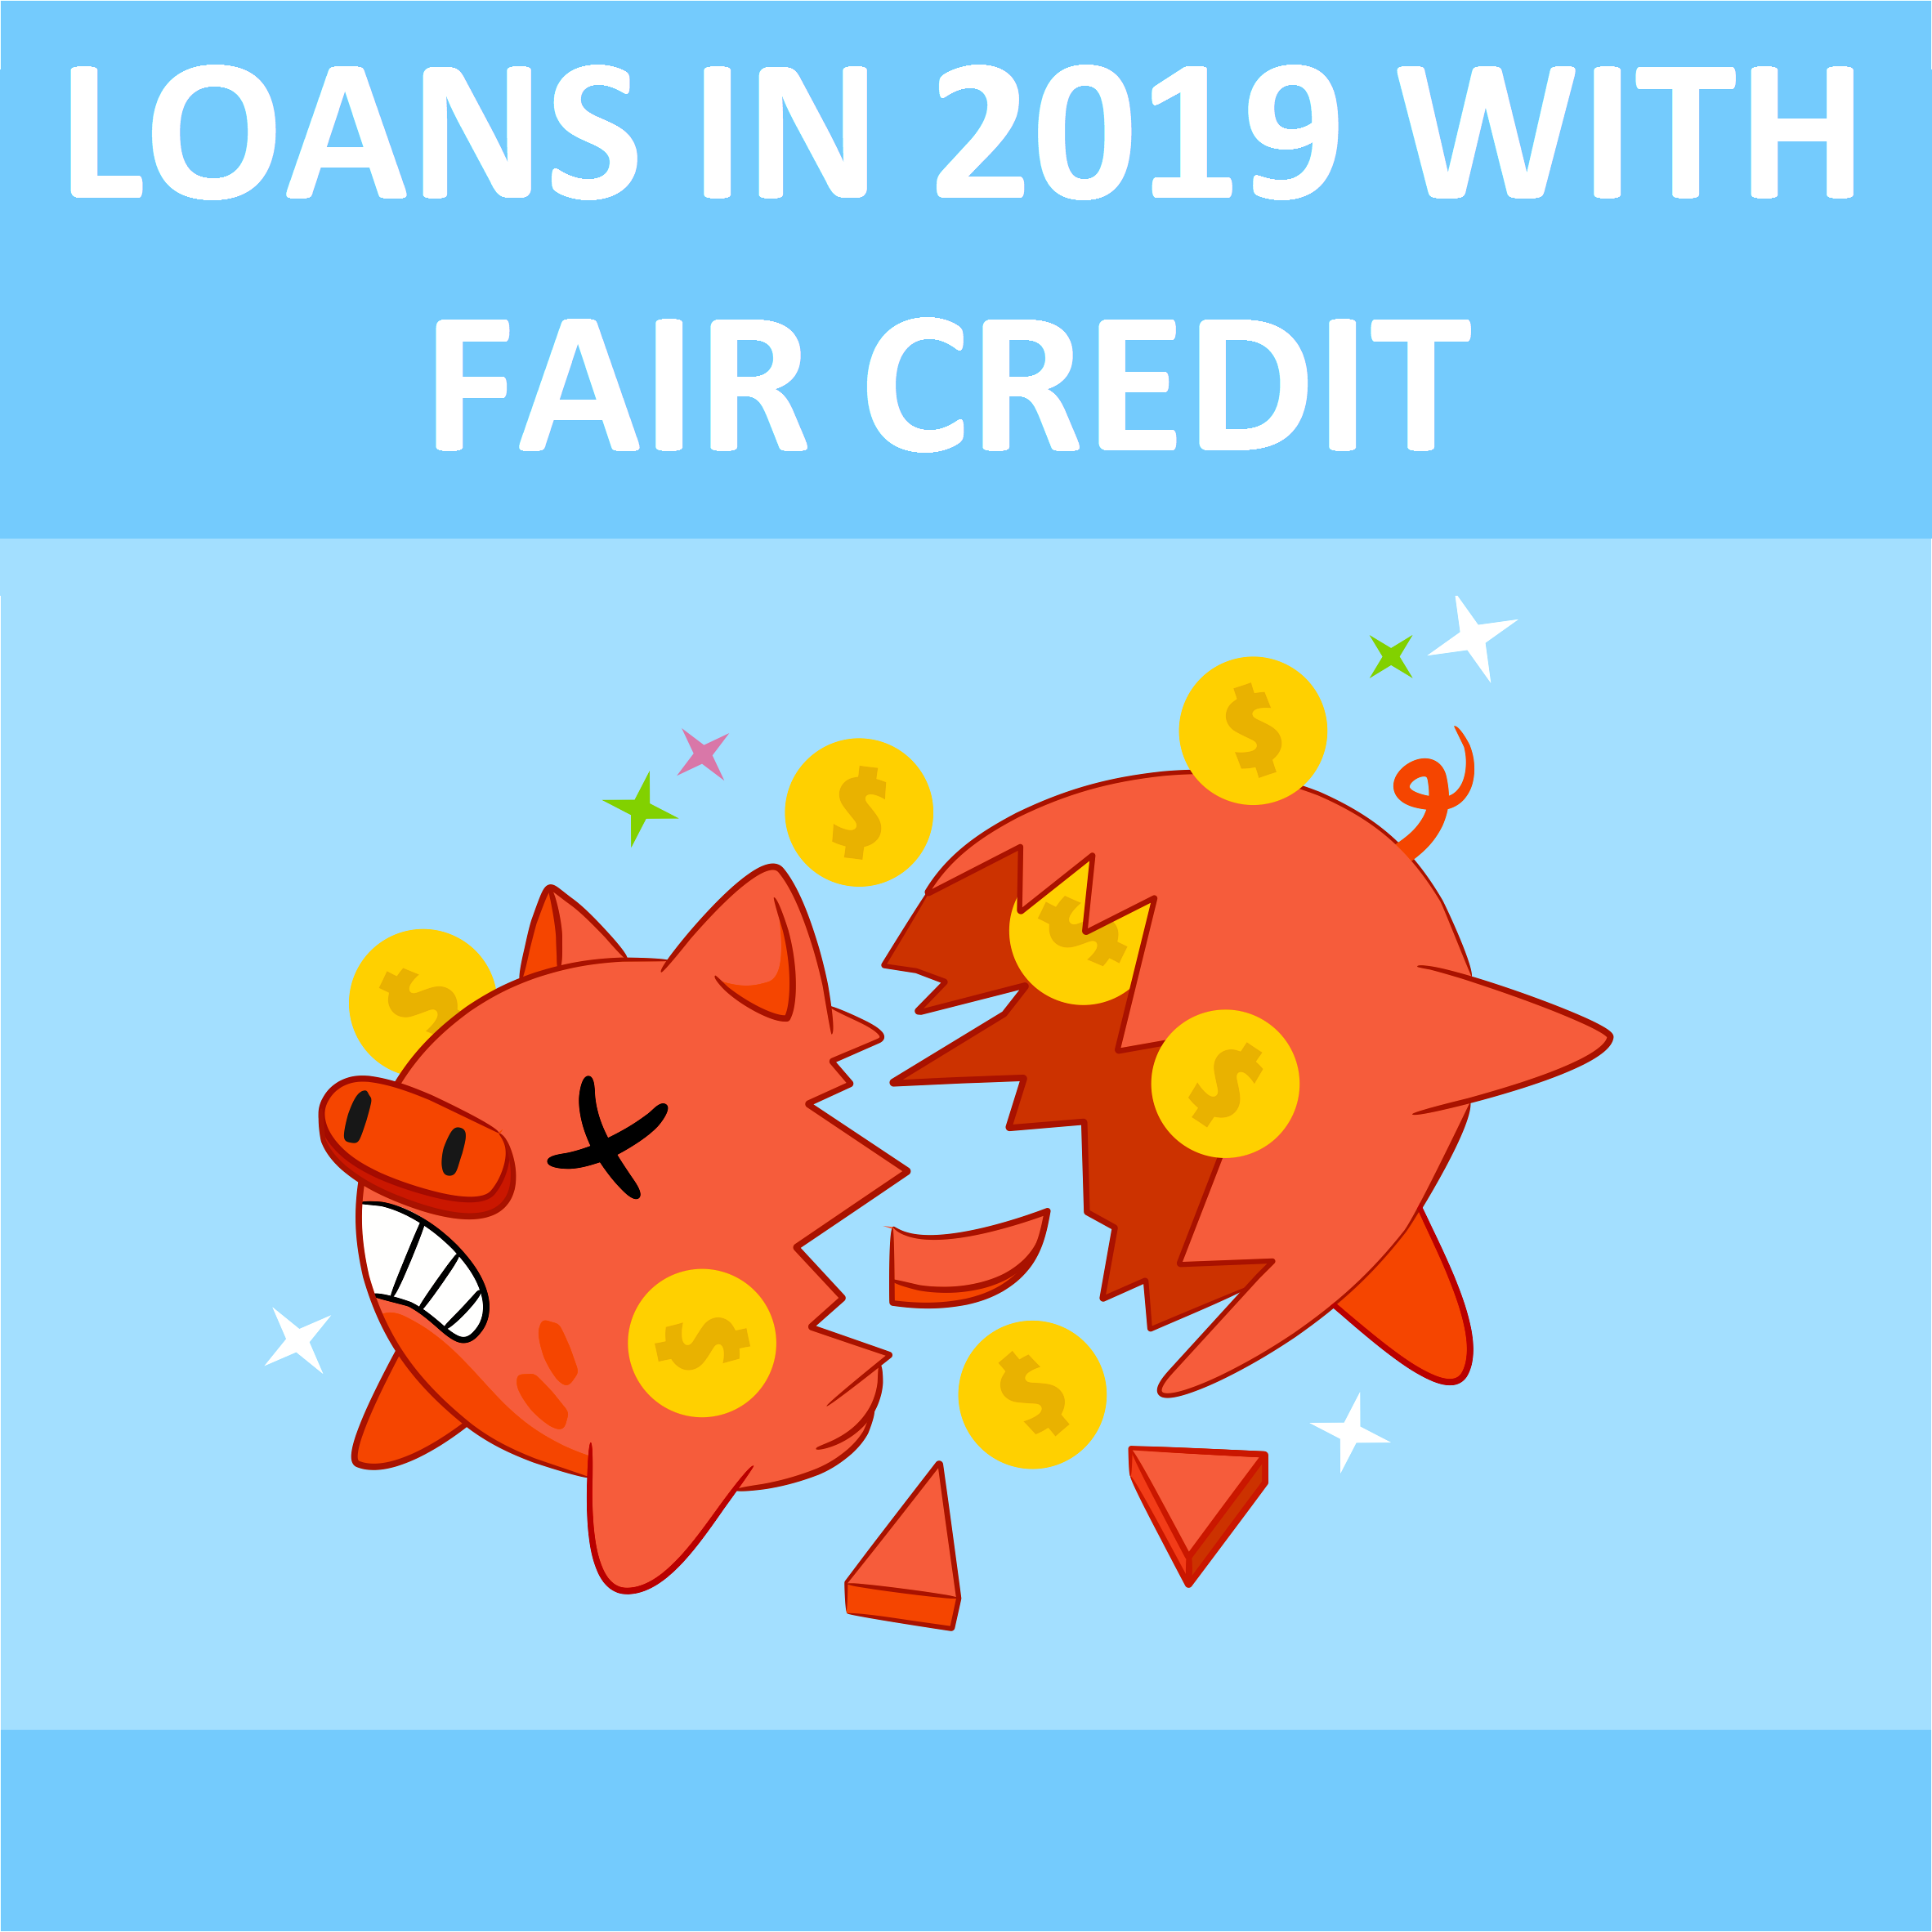 Loans For Fair Credit >> Loans In 2019 With Fair Credit Loan Away